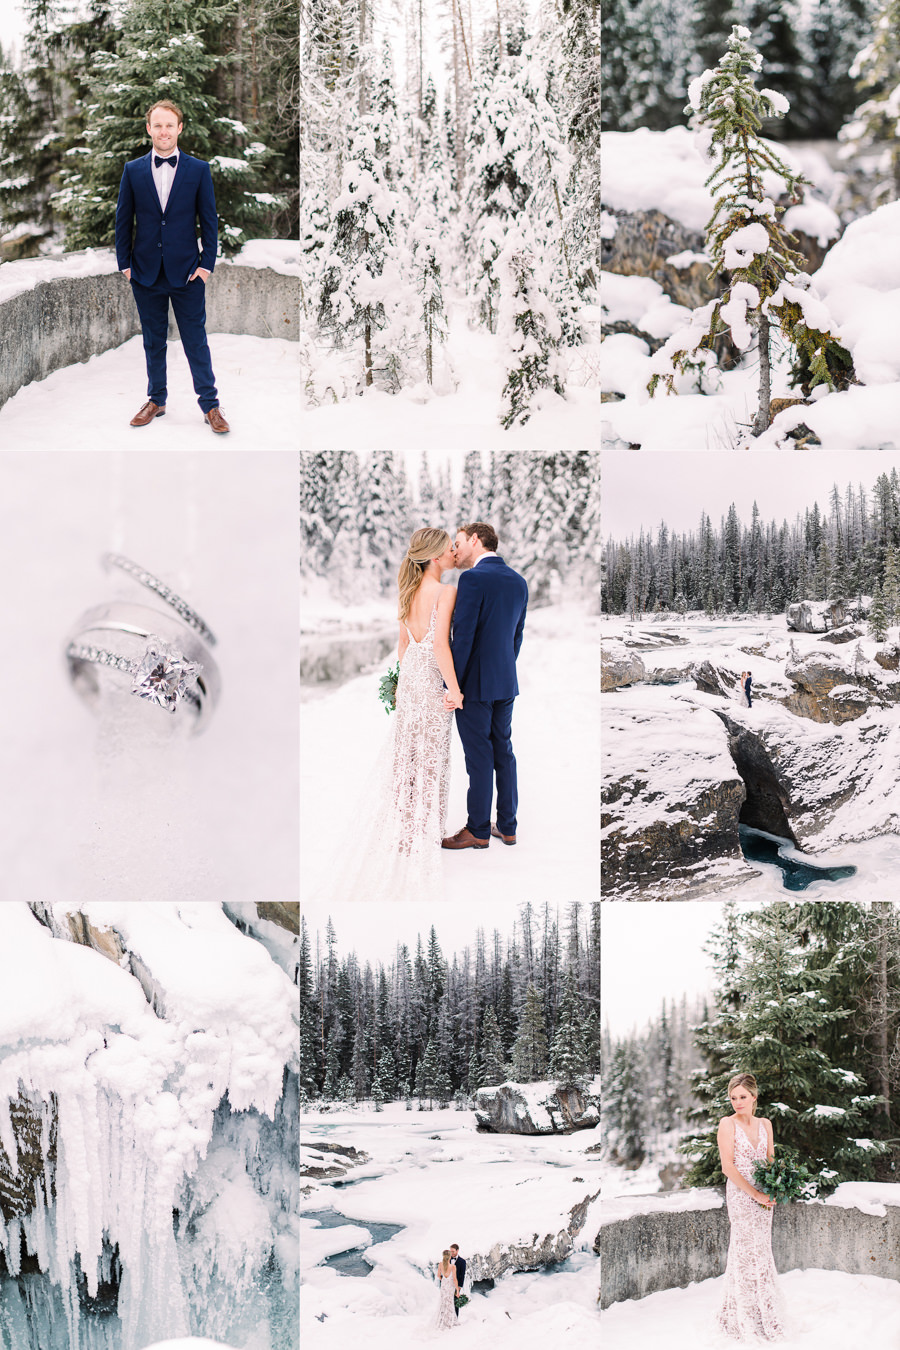 Emeral-lake-lodge-snowy-winter-wedding-1.jpg